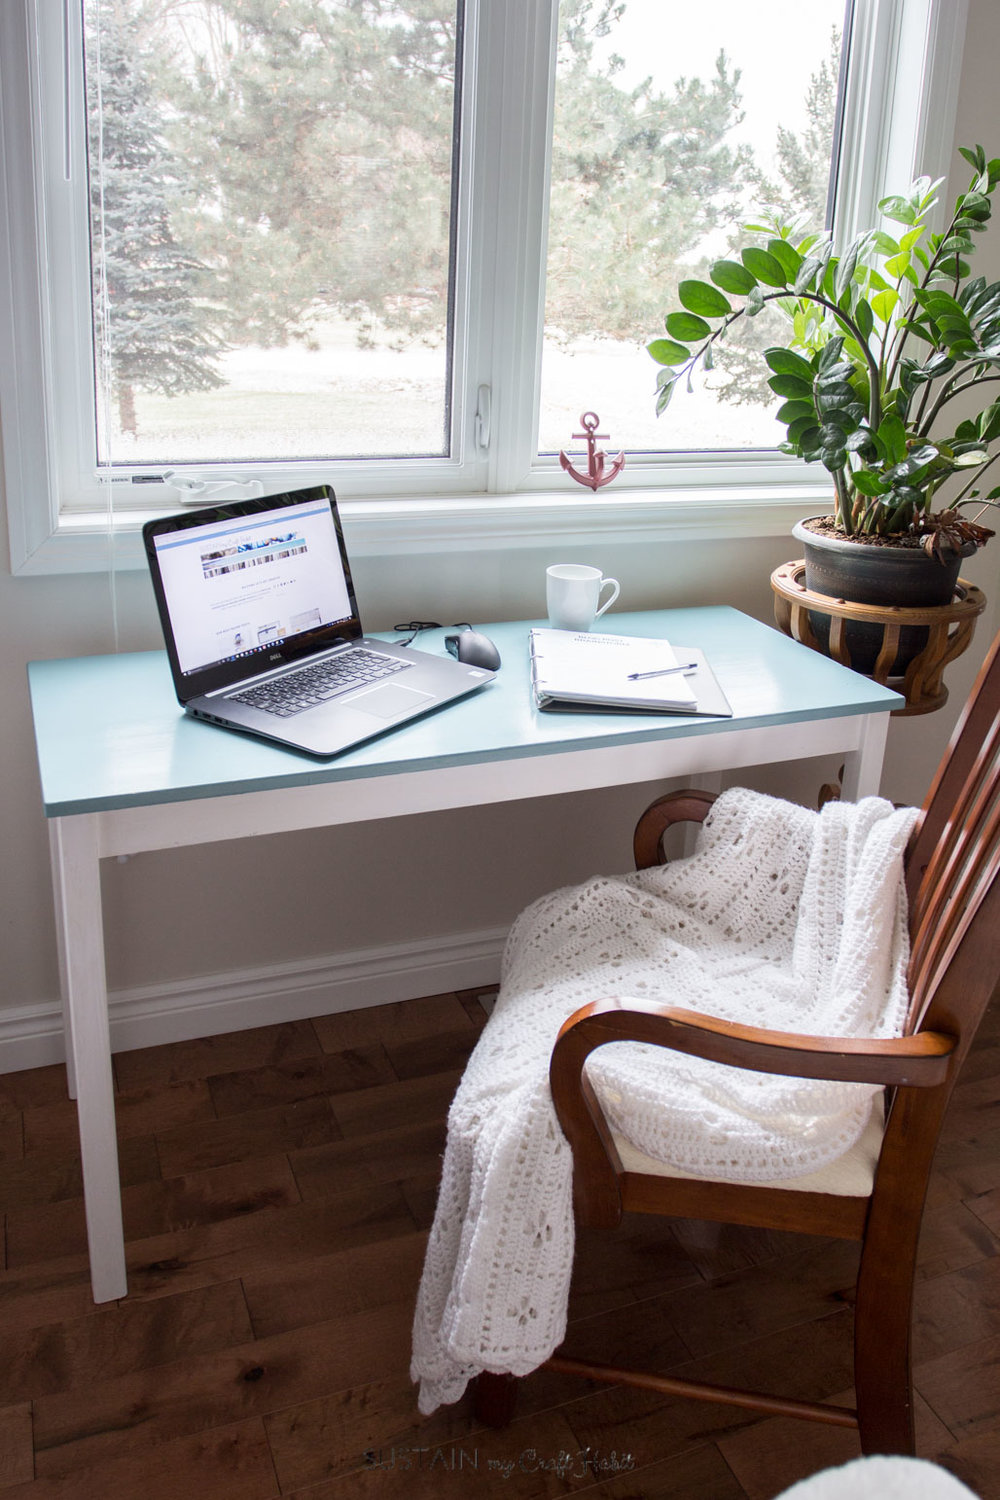 A simple diy console table makeover a solution to yellowing diy wood console table coastal makeover simple home office nook how to repaint yelllowing geotapseo Choice Image